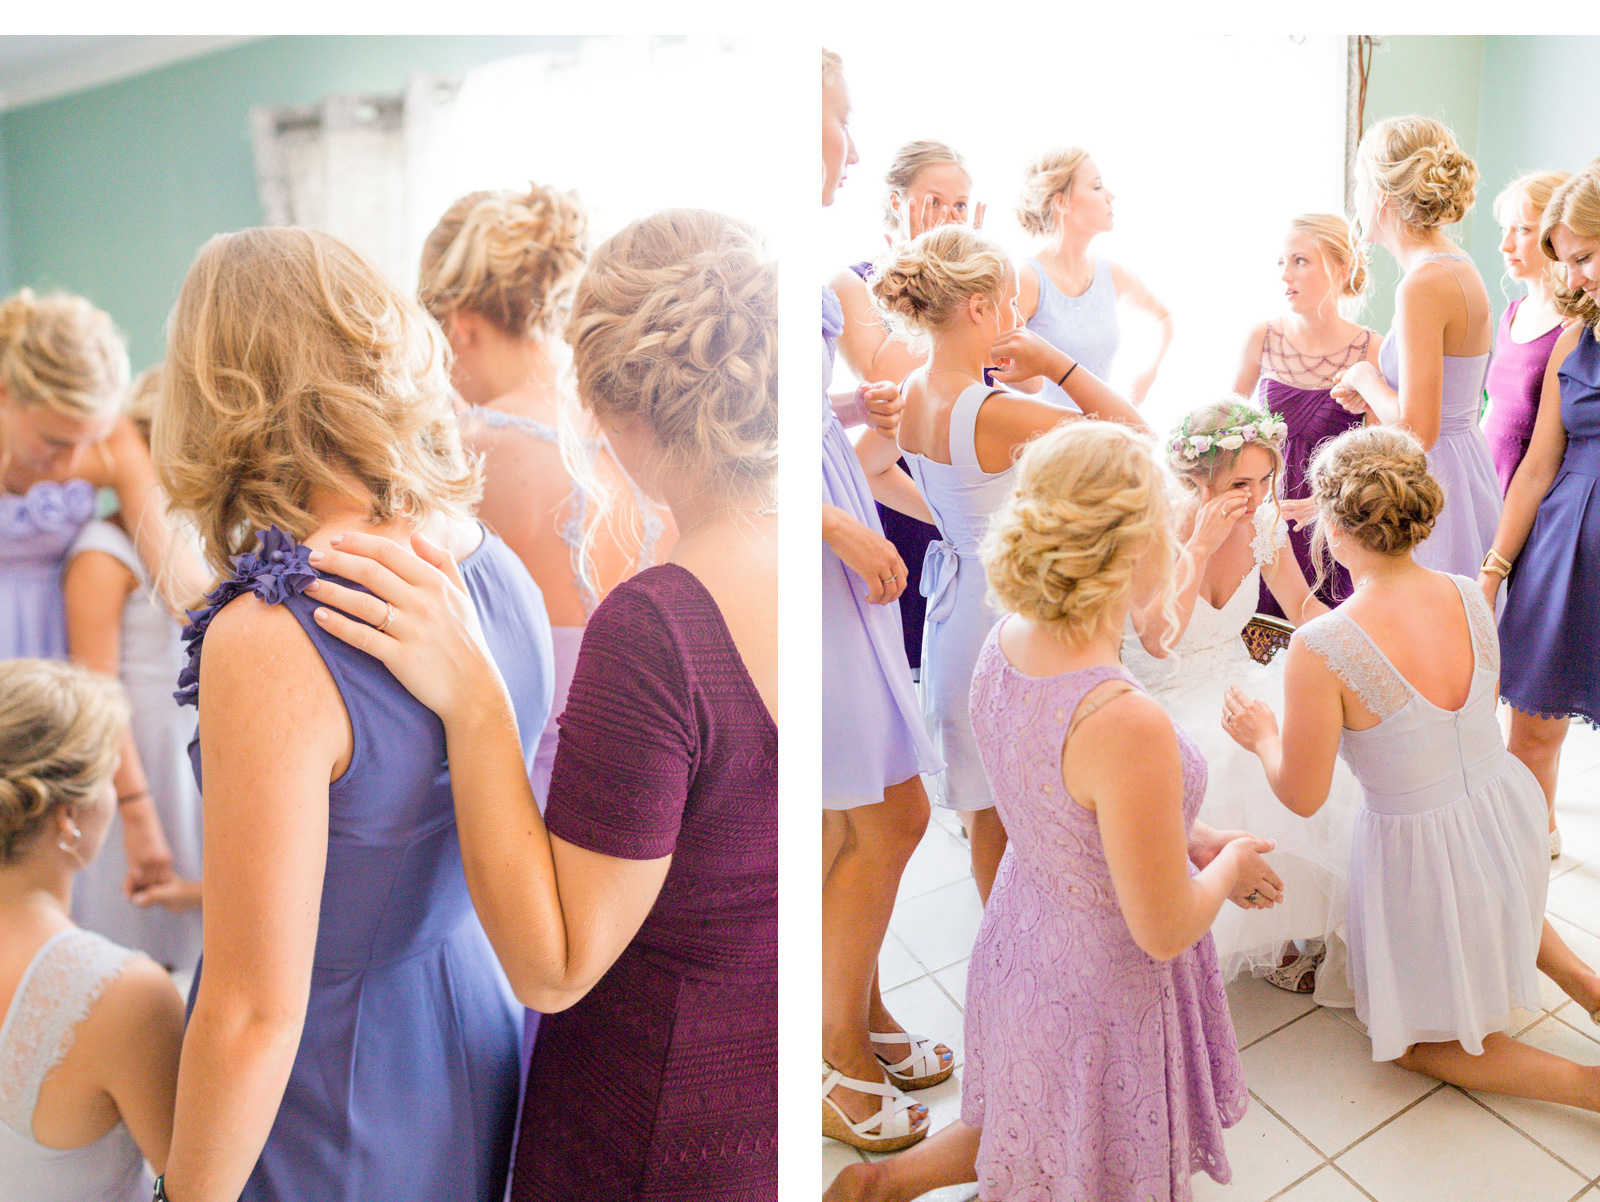 Salzman-Wedding-Getting-Ready-Natalie-Schutt-Photography_05.jpg